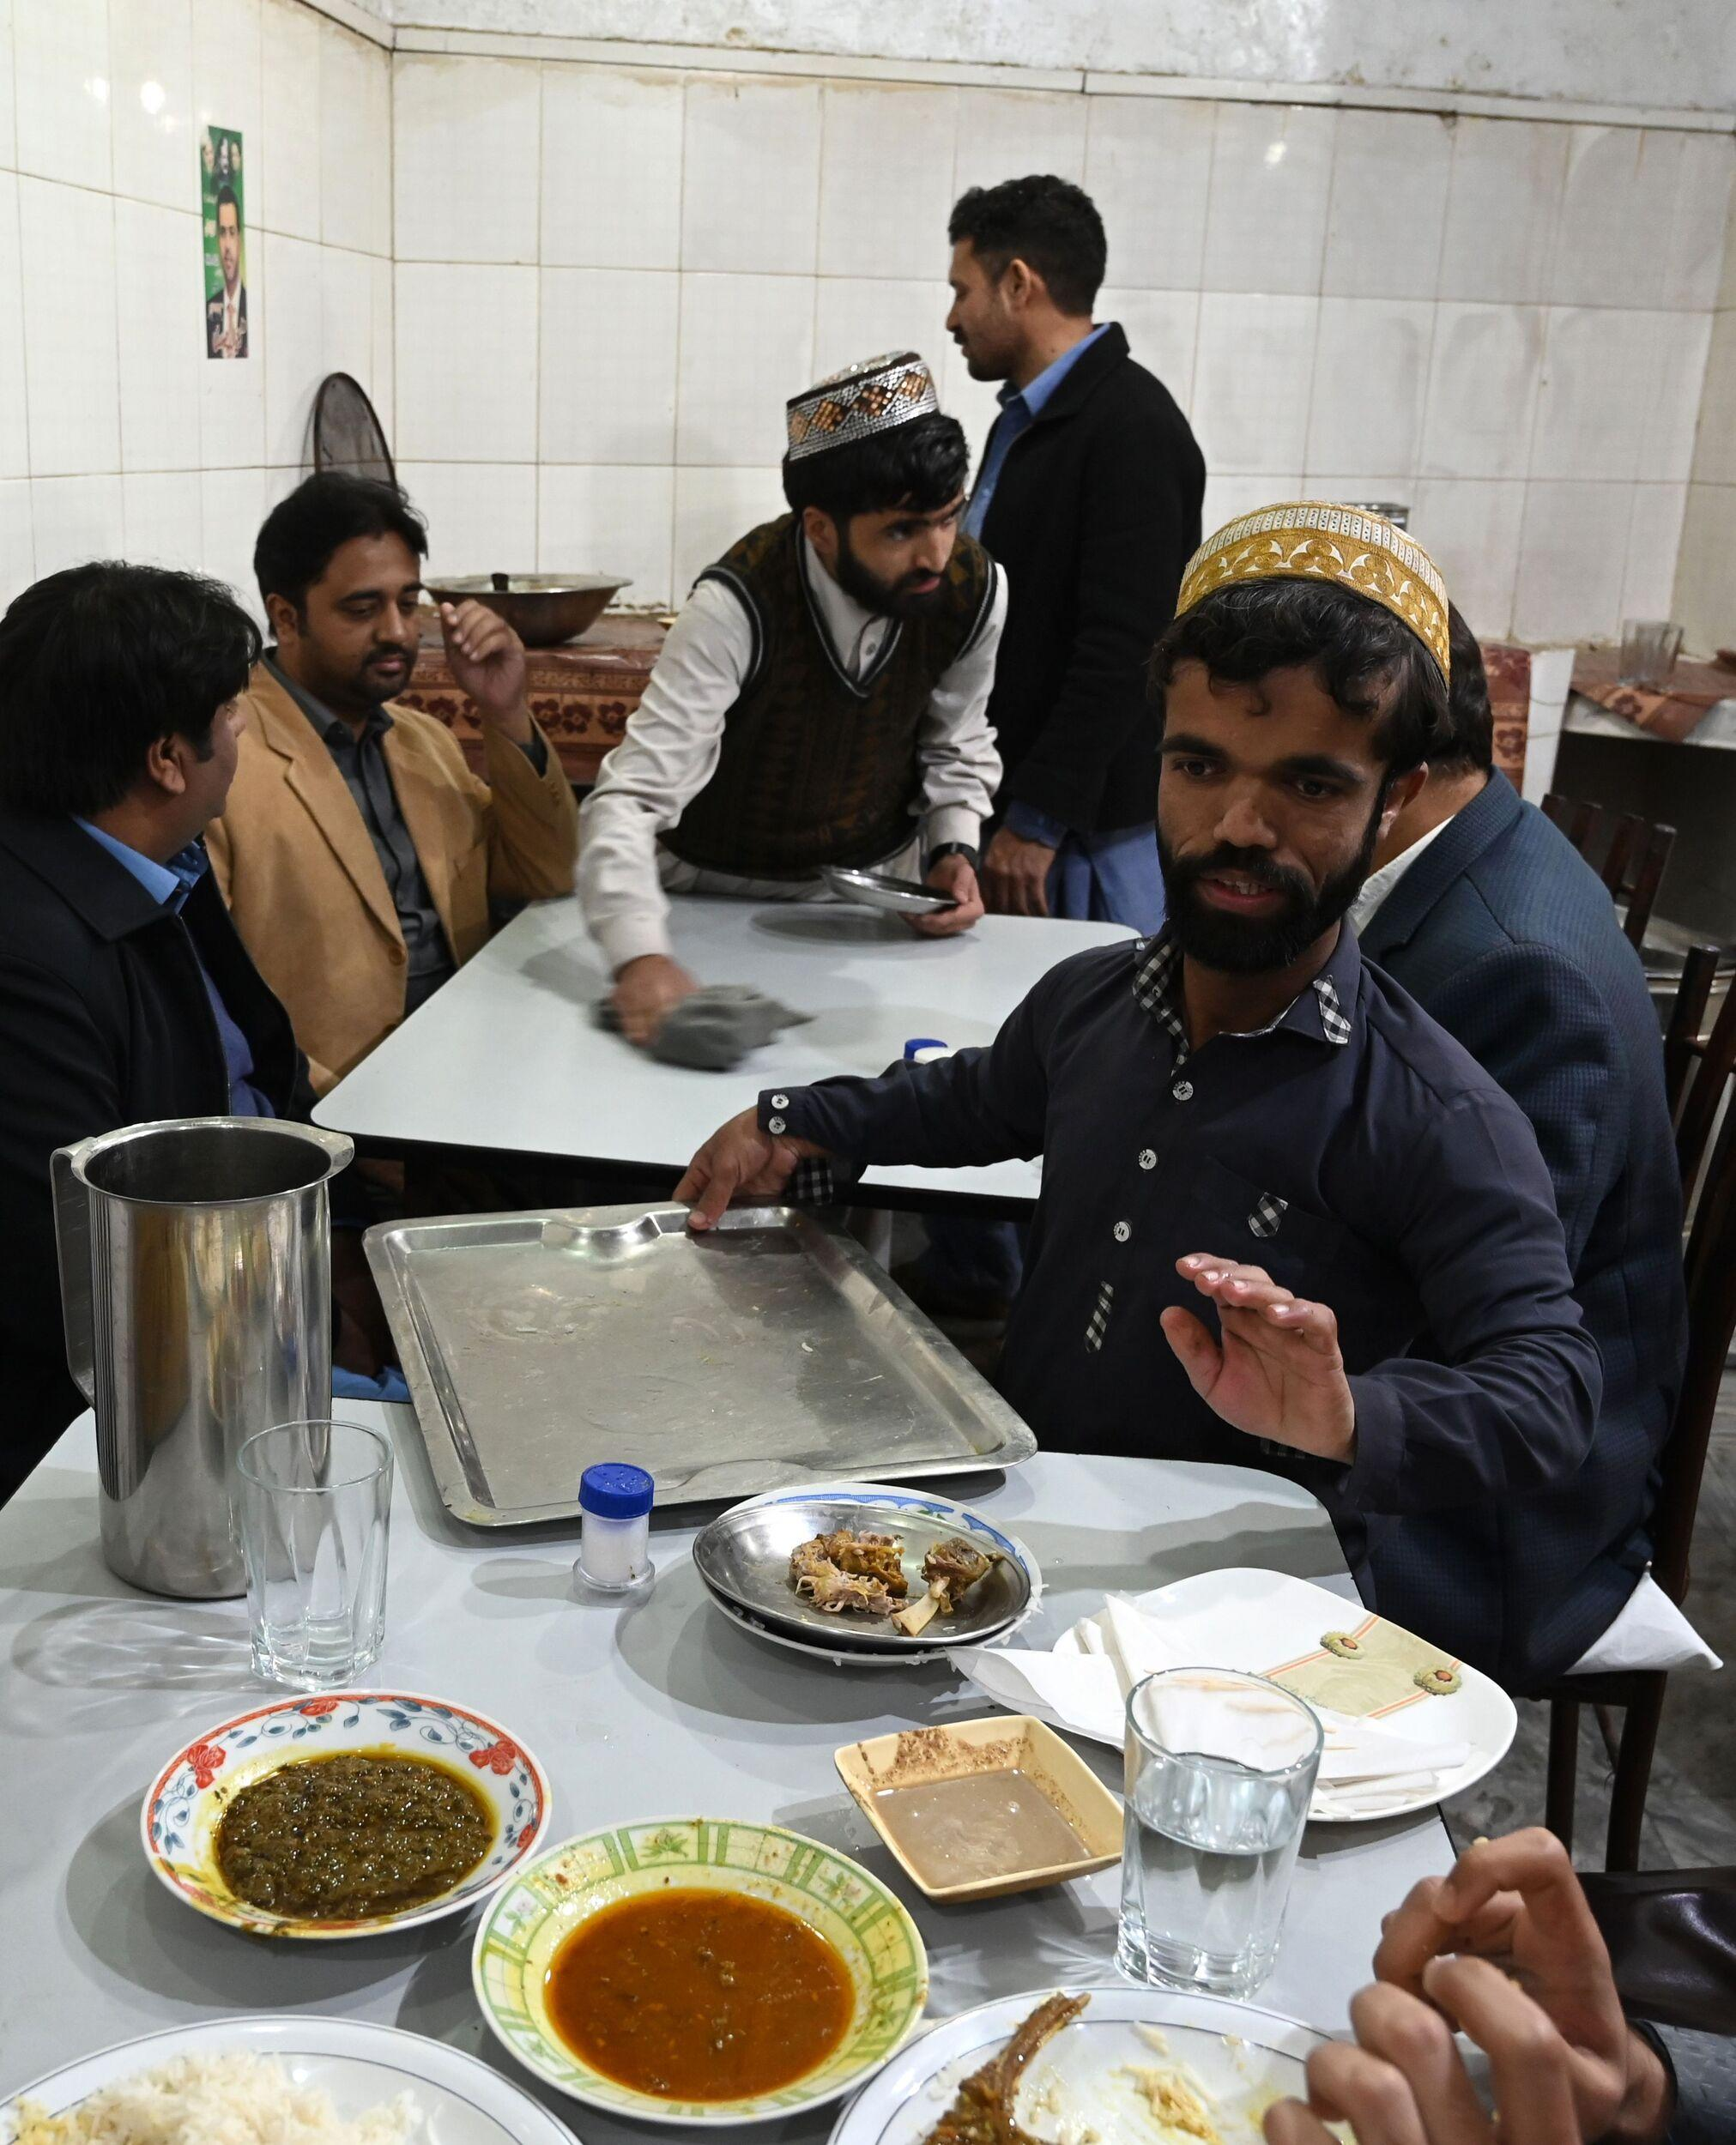 In this picture taken on February 22, 2019, Rozi Khan (R), a 25-year-old Pakistani waiter who resembles US actor Peter Dinklage, serves food to customers at Dilbar Hotel in Rawalpindi. - Rozi Khan had never heard of the Game of Thrones -- or its hugely popular character Tyrion Lannister -- until his striking resemblance to the dwarf anti-hero got heads turning at home. (Photo by AAMIR QURESHI / AFP) / To go with PAKISTAN-LIFESTYLE-TELEVISION-ENTERTAINMENT        (Photo credit should read AAMIR QURESHI/AFP/Getty Images)